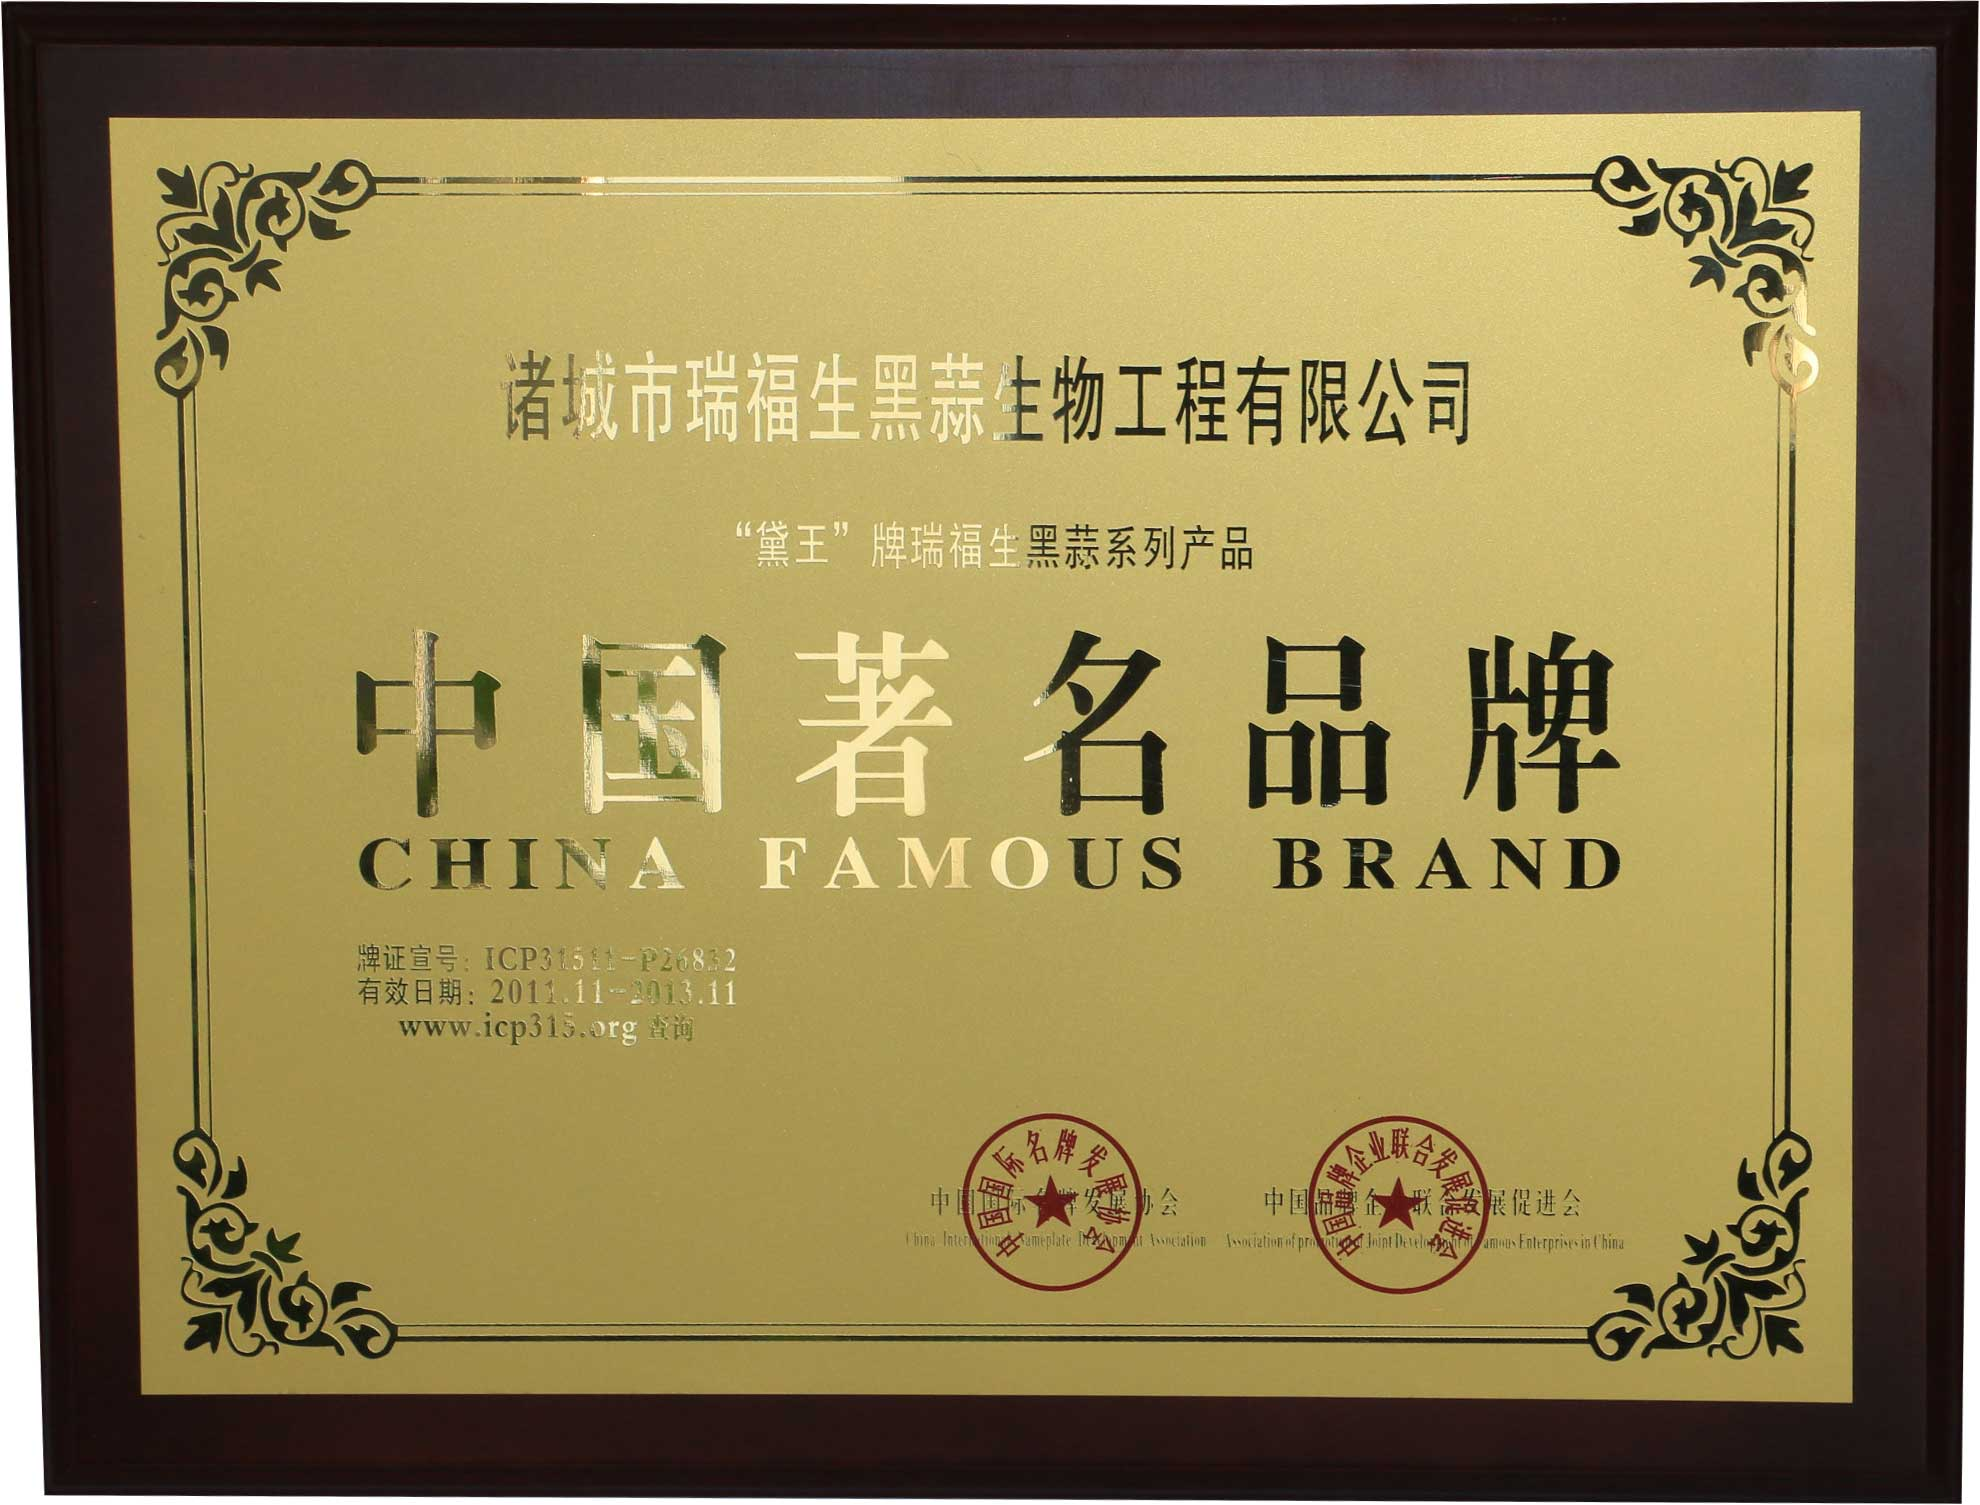 Chinese famous brand